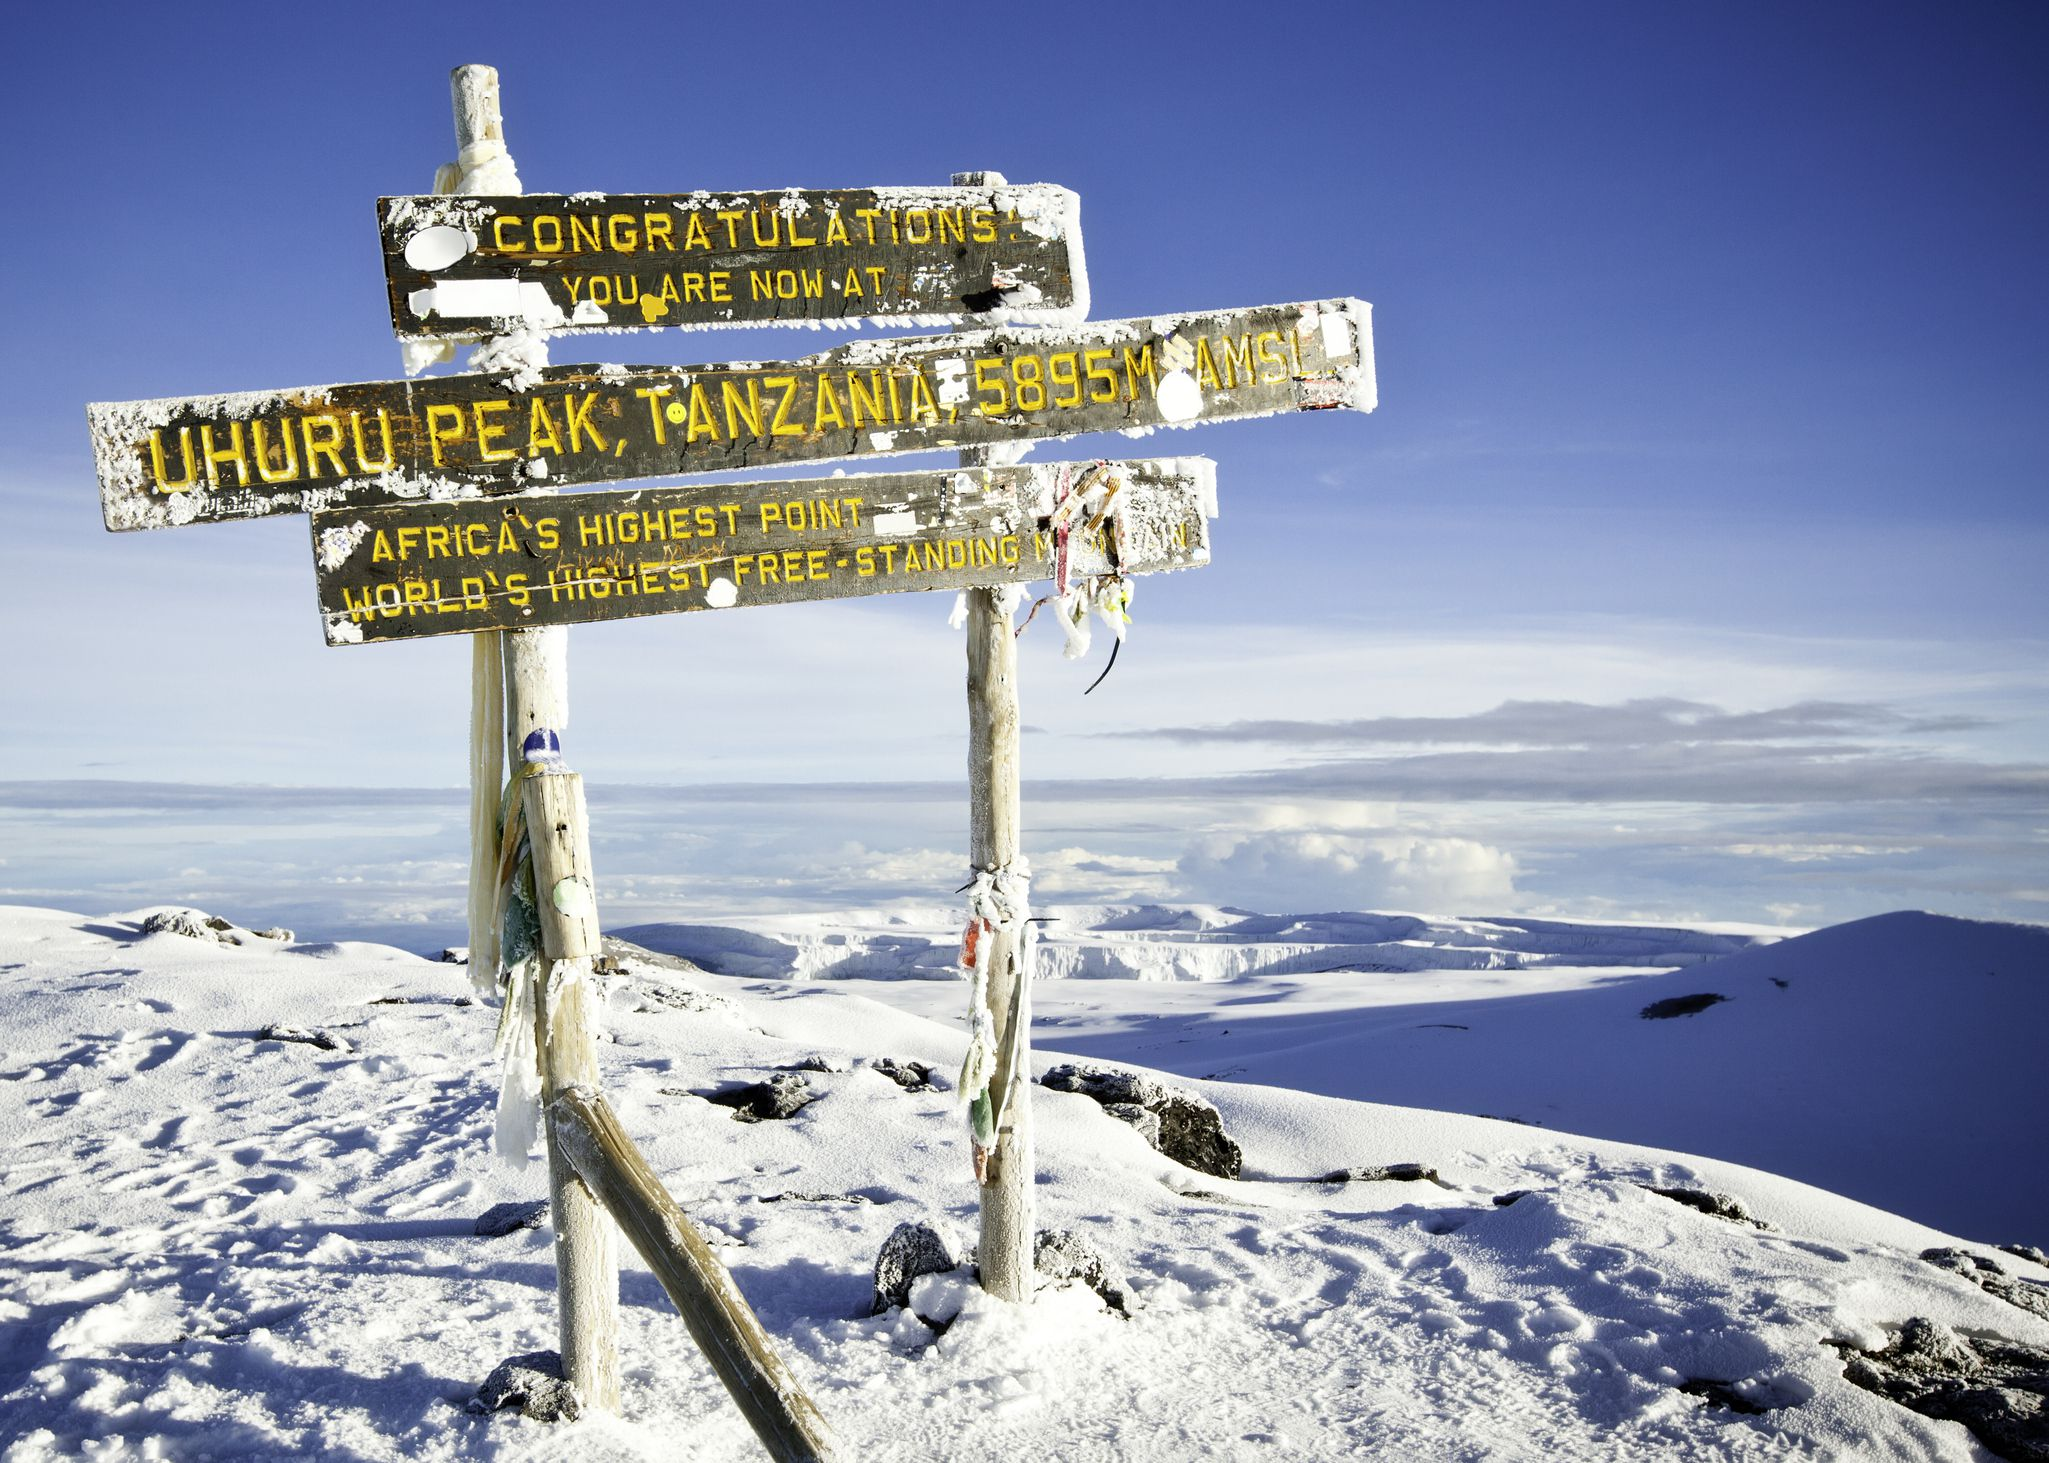 Mount Kilimanjaro: Tips for Planning Your Climb